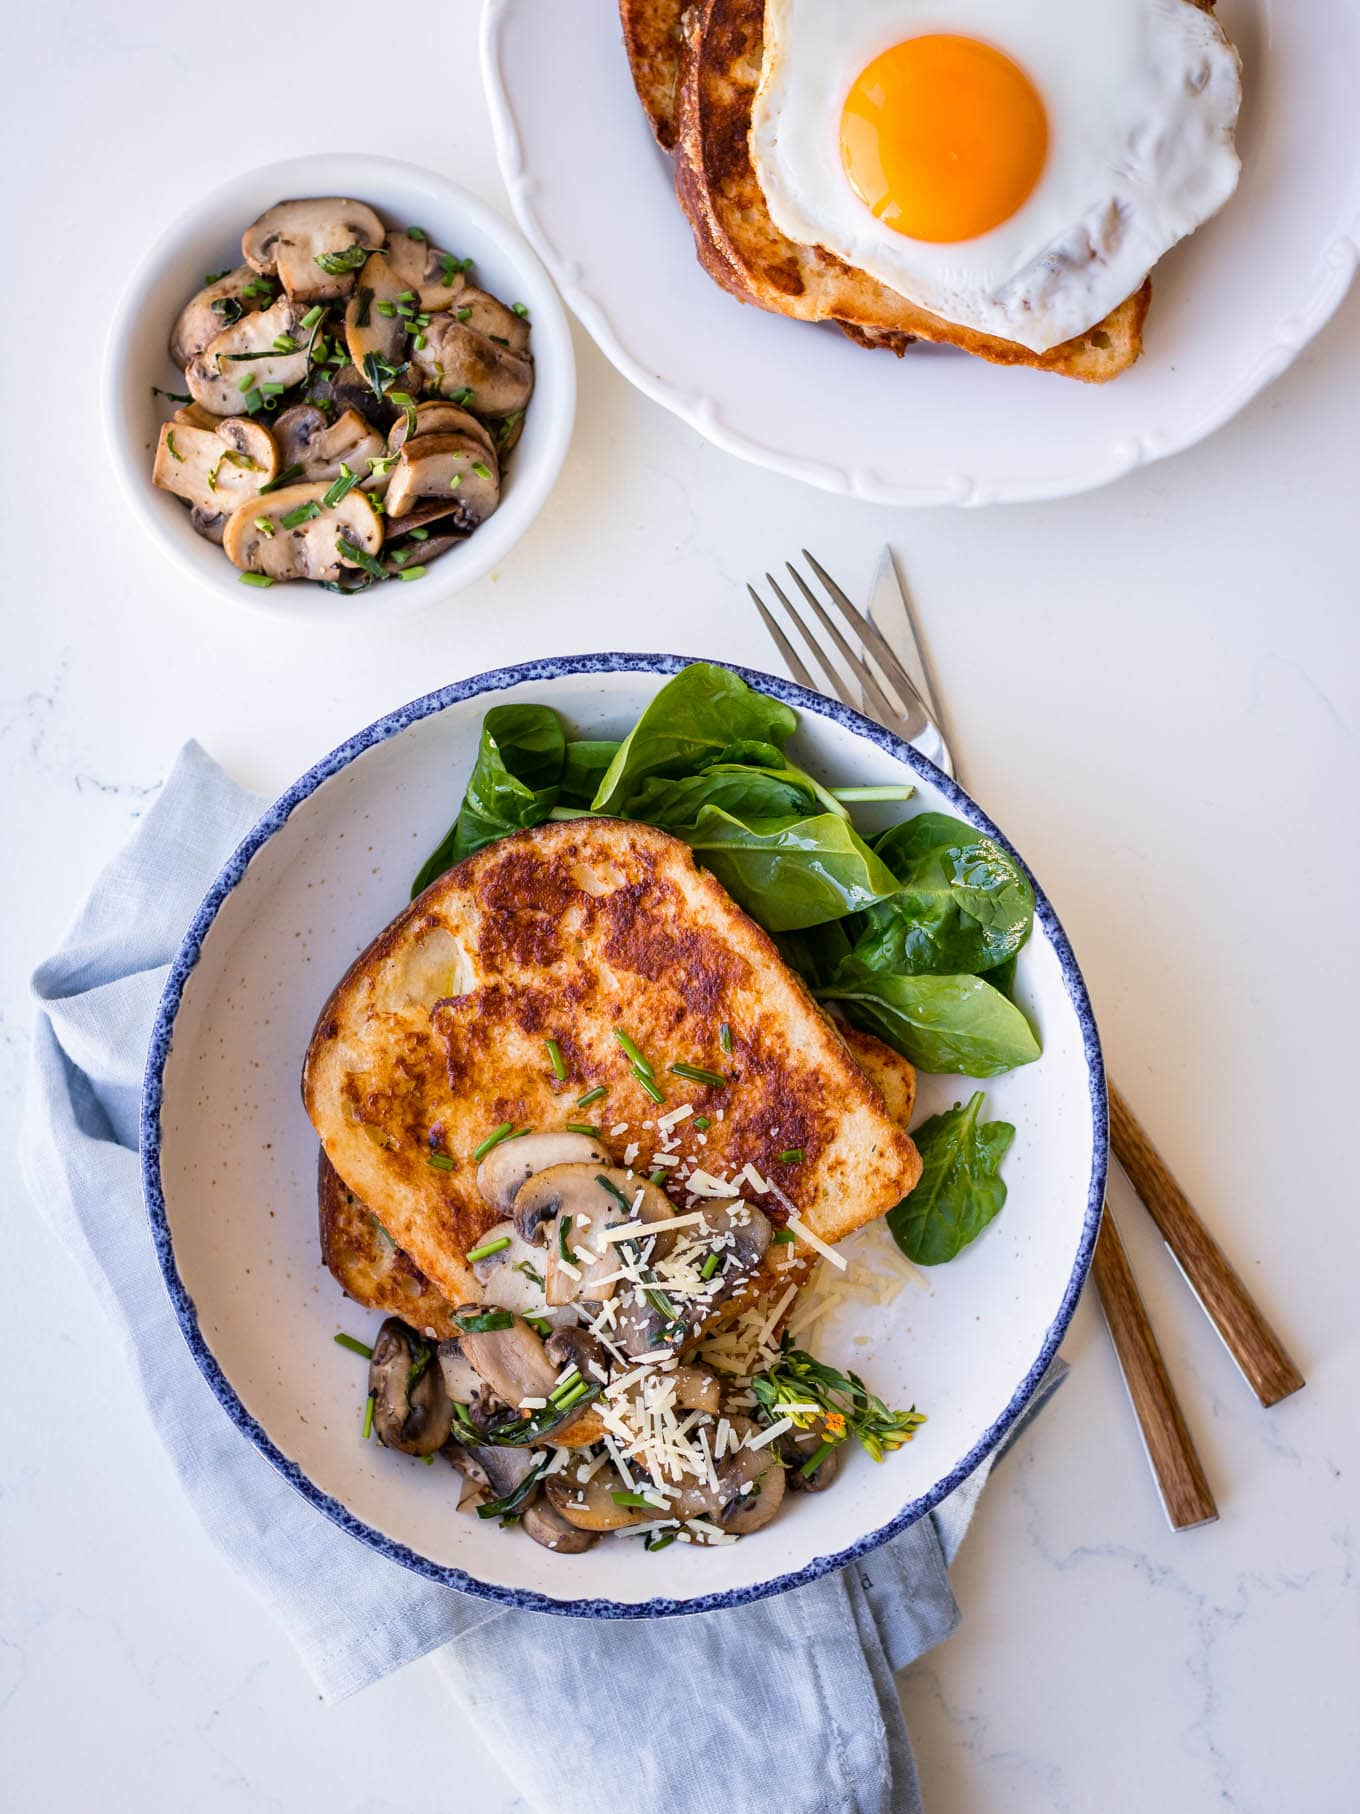 Savoury French Toast with Mushrooms